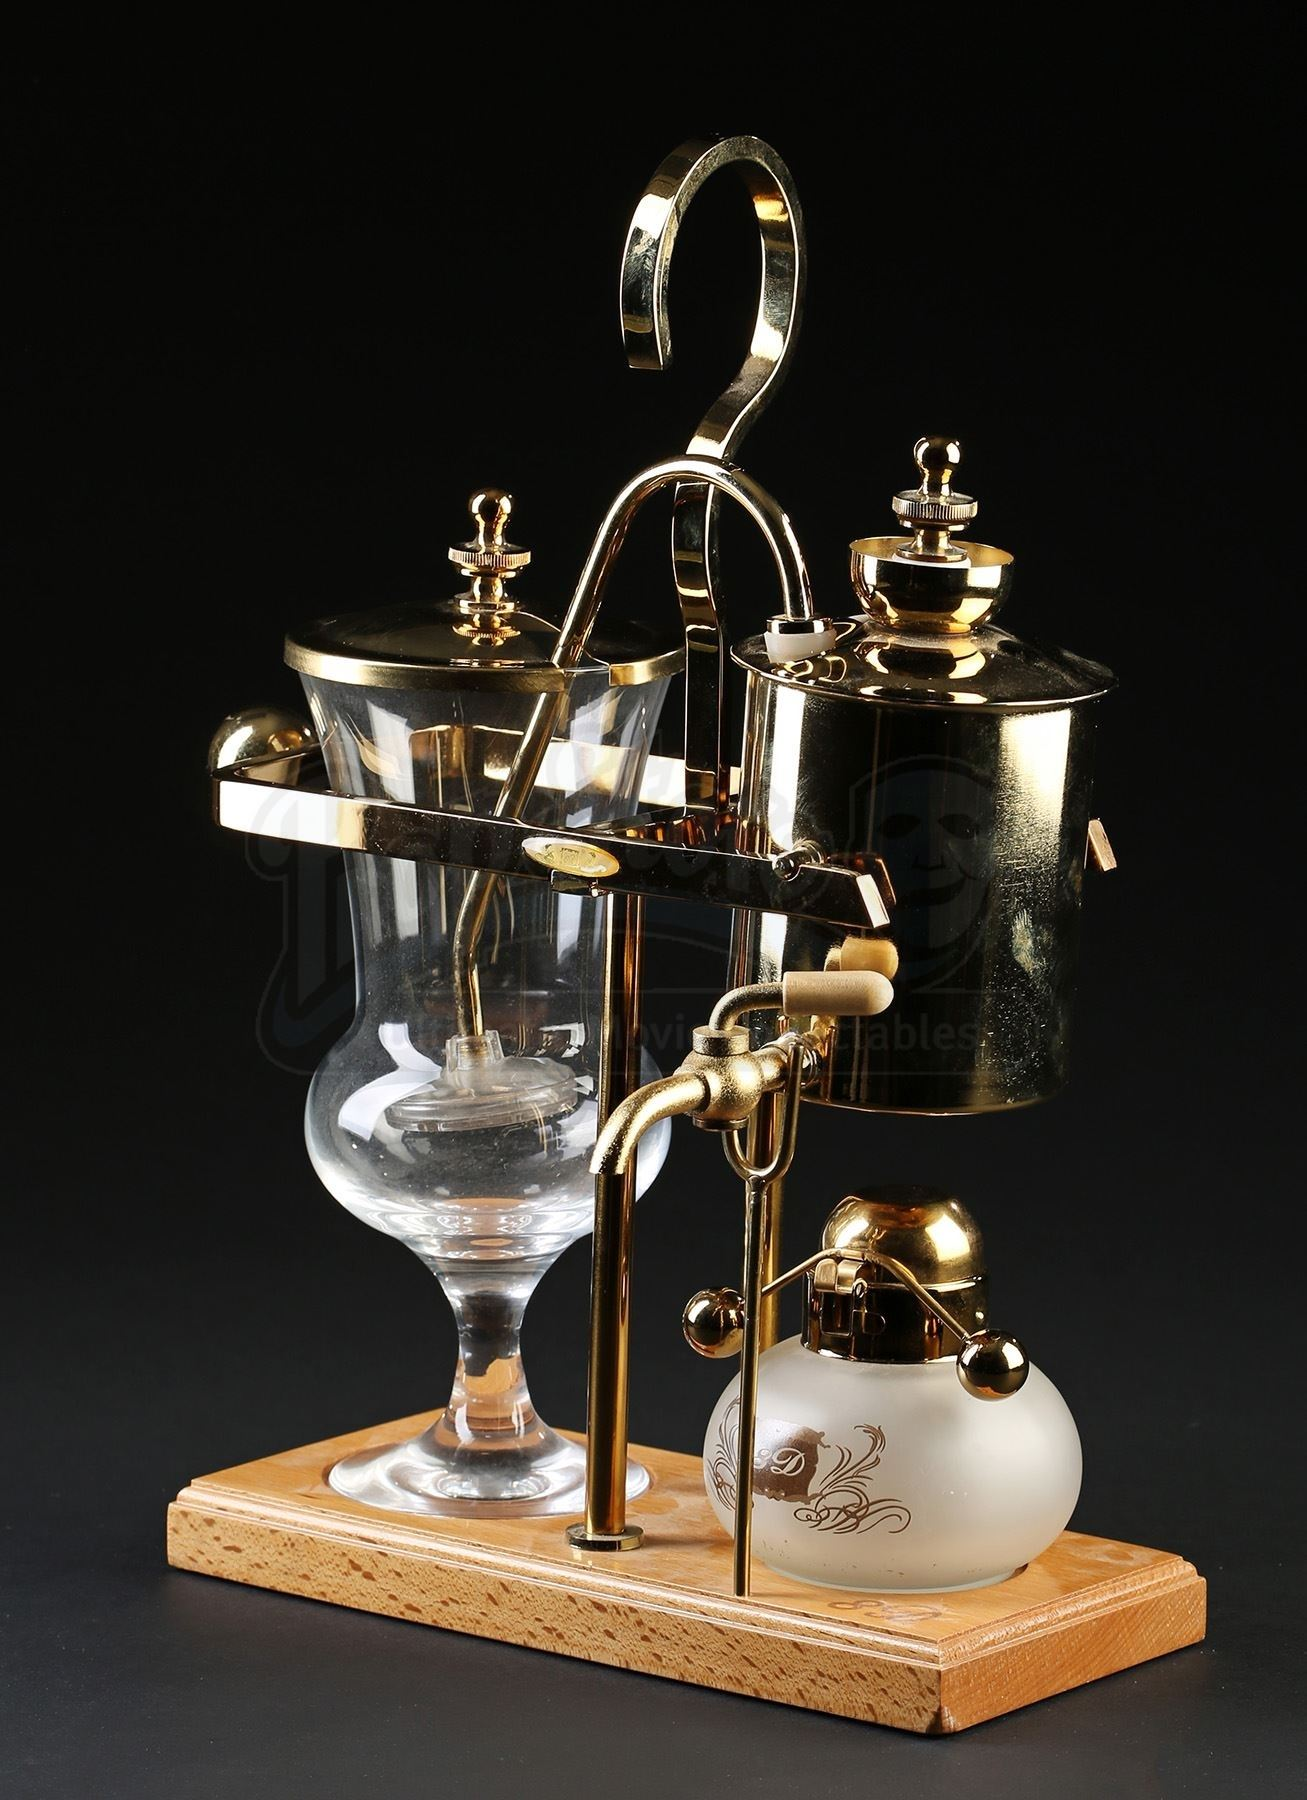 SEASONS 1 AND 2Hannibal Lecter s (Mads Mikkelsen) Belgium Royal Coffee Maker - Current price: USD 1600